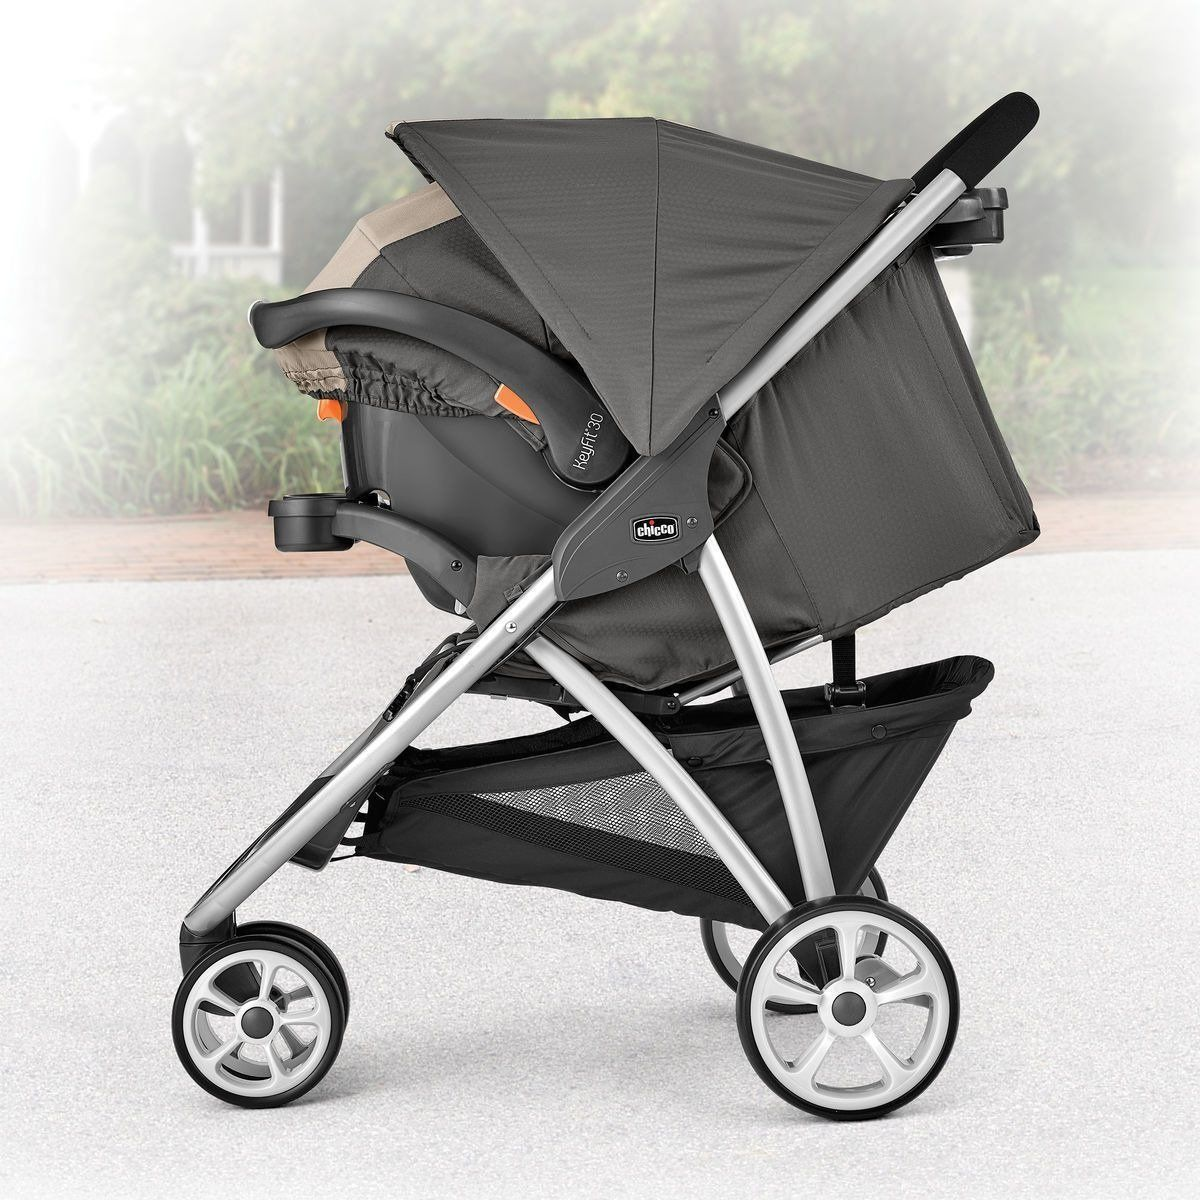 Chicco Viaro 3 Wheel Travel System Stroller with KeyFit 30